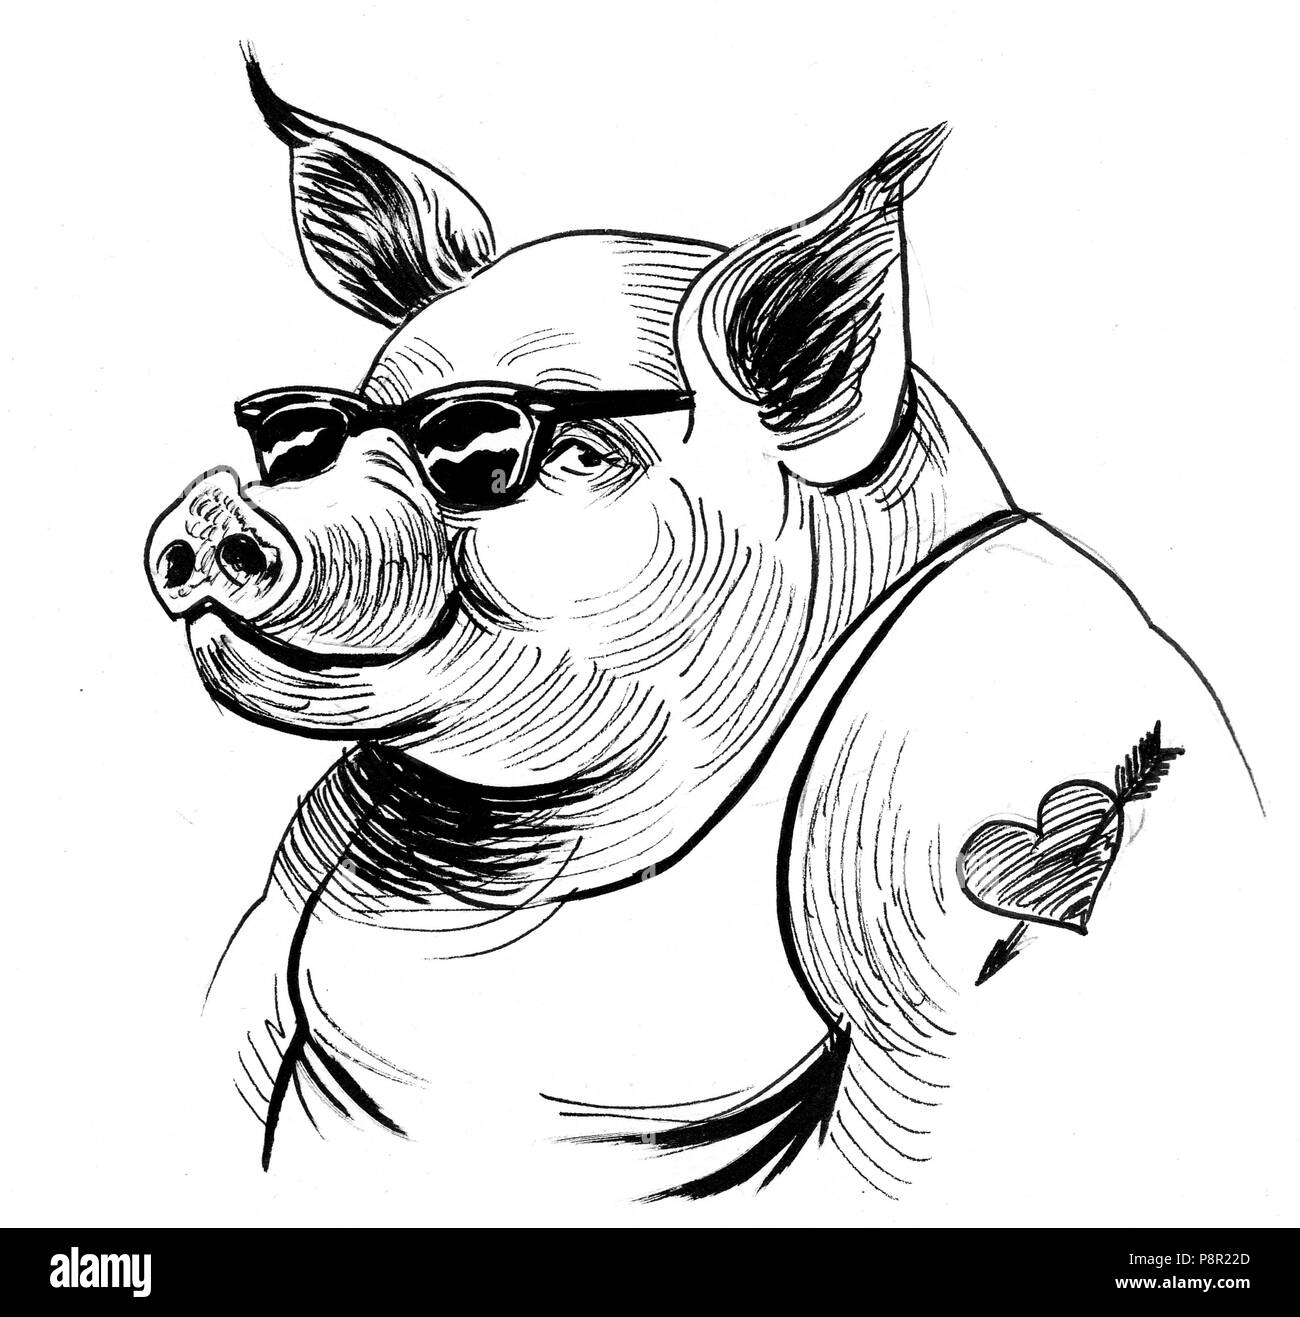 Cool pig in sunglasses and tattoo ink black and white illustration